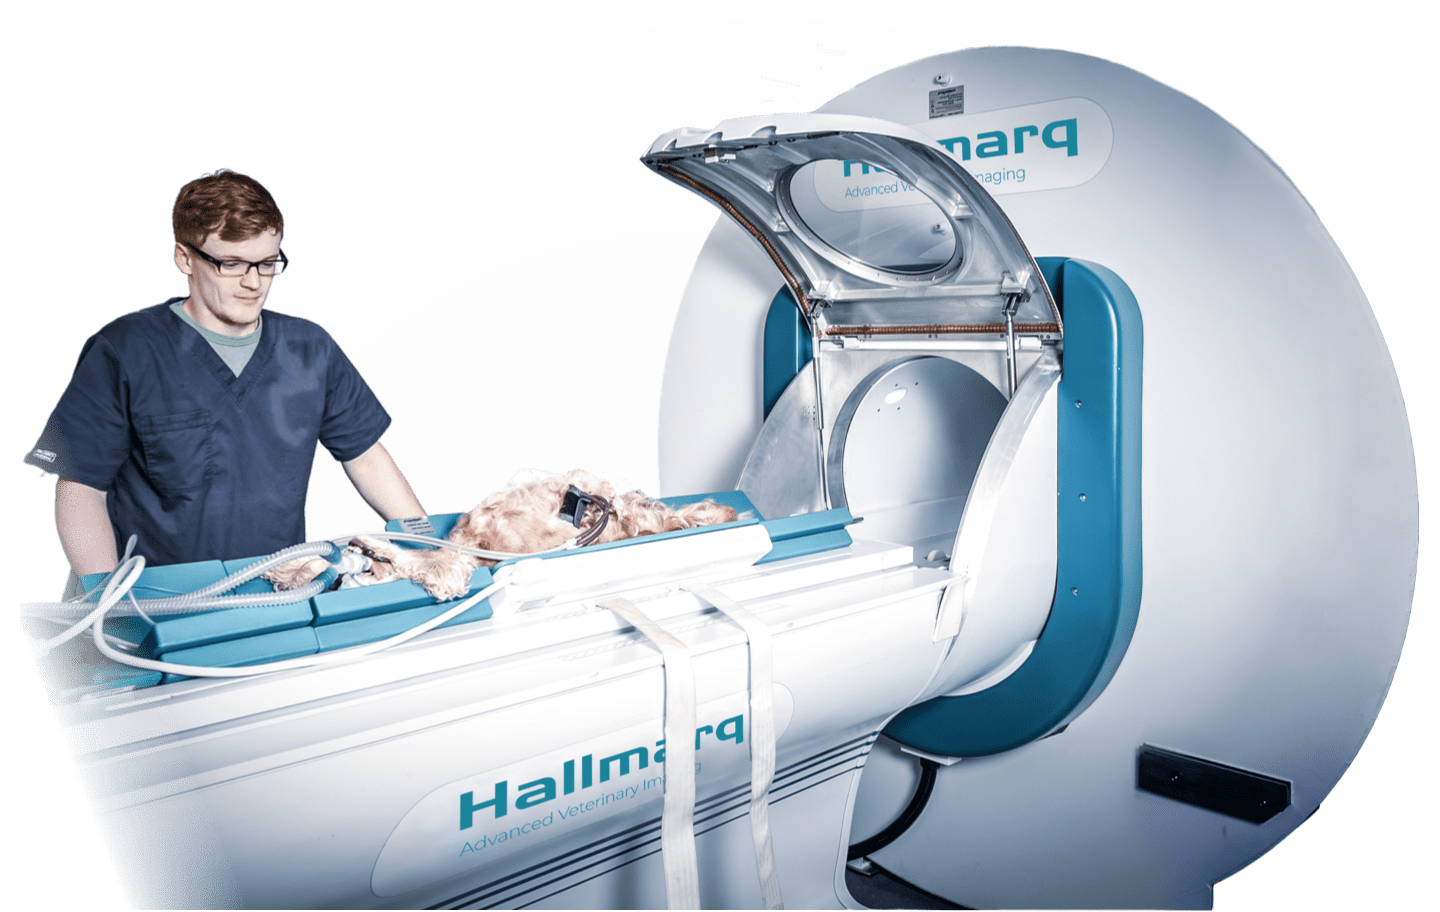 Picture of Hallmarq Veterinary imaging specialist's small animal MRI scanner.